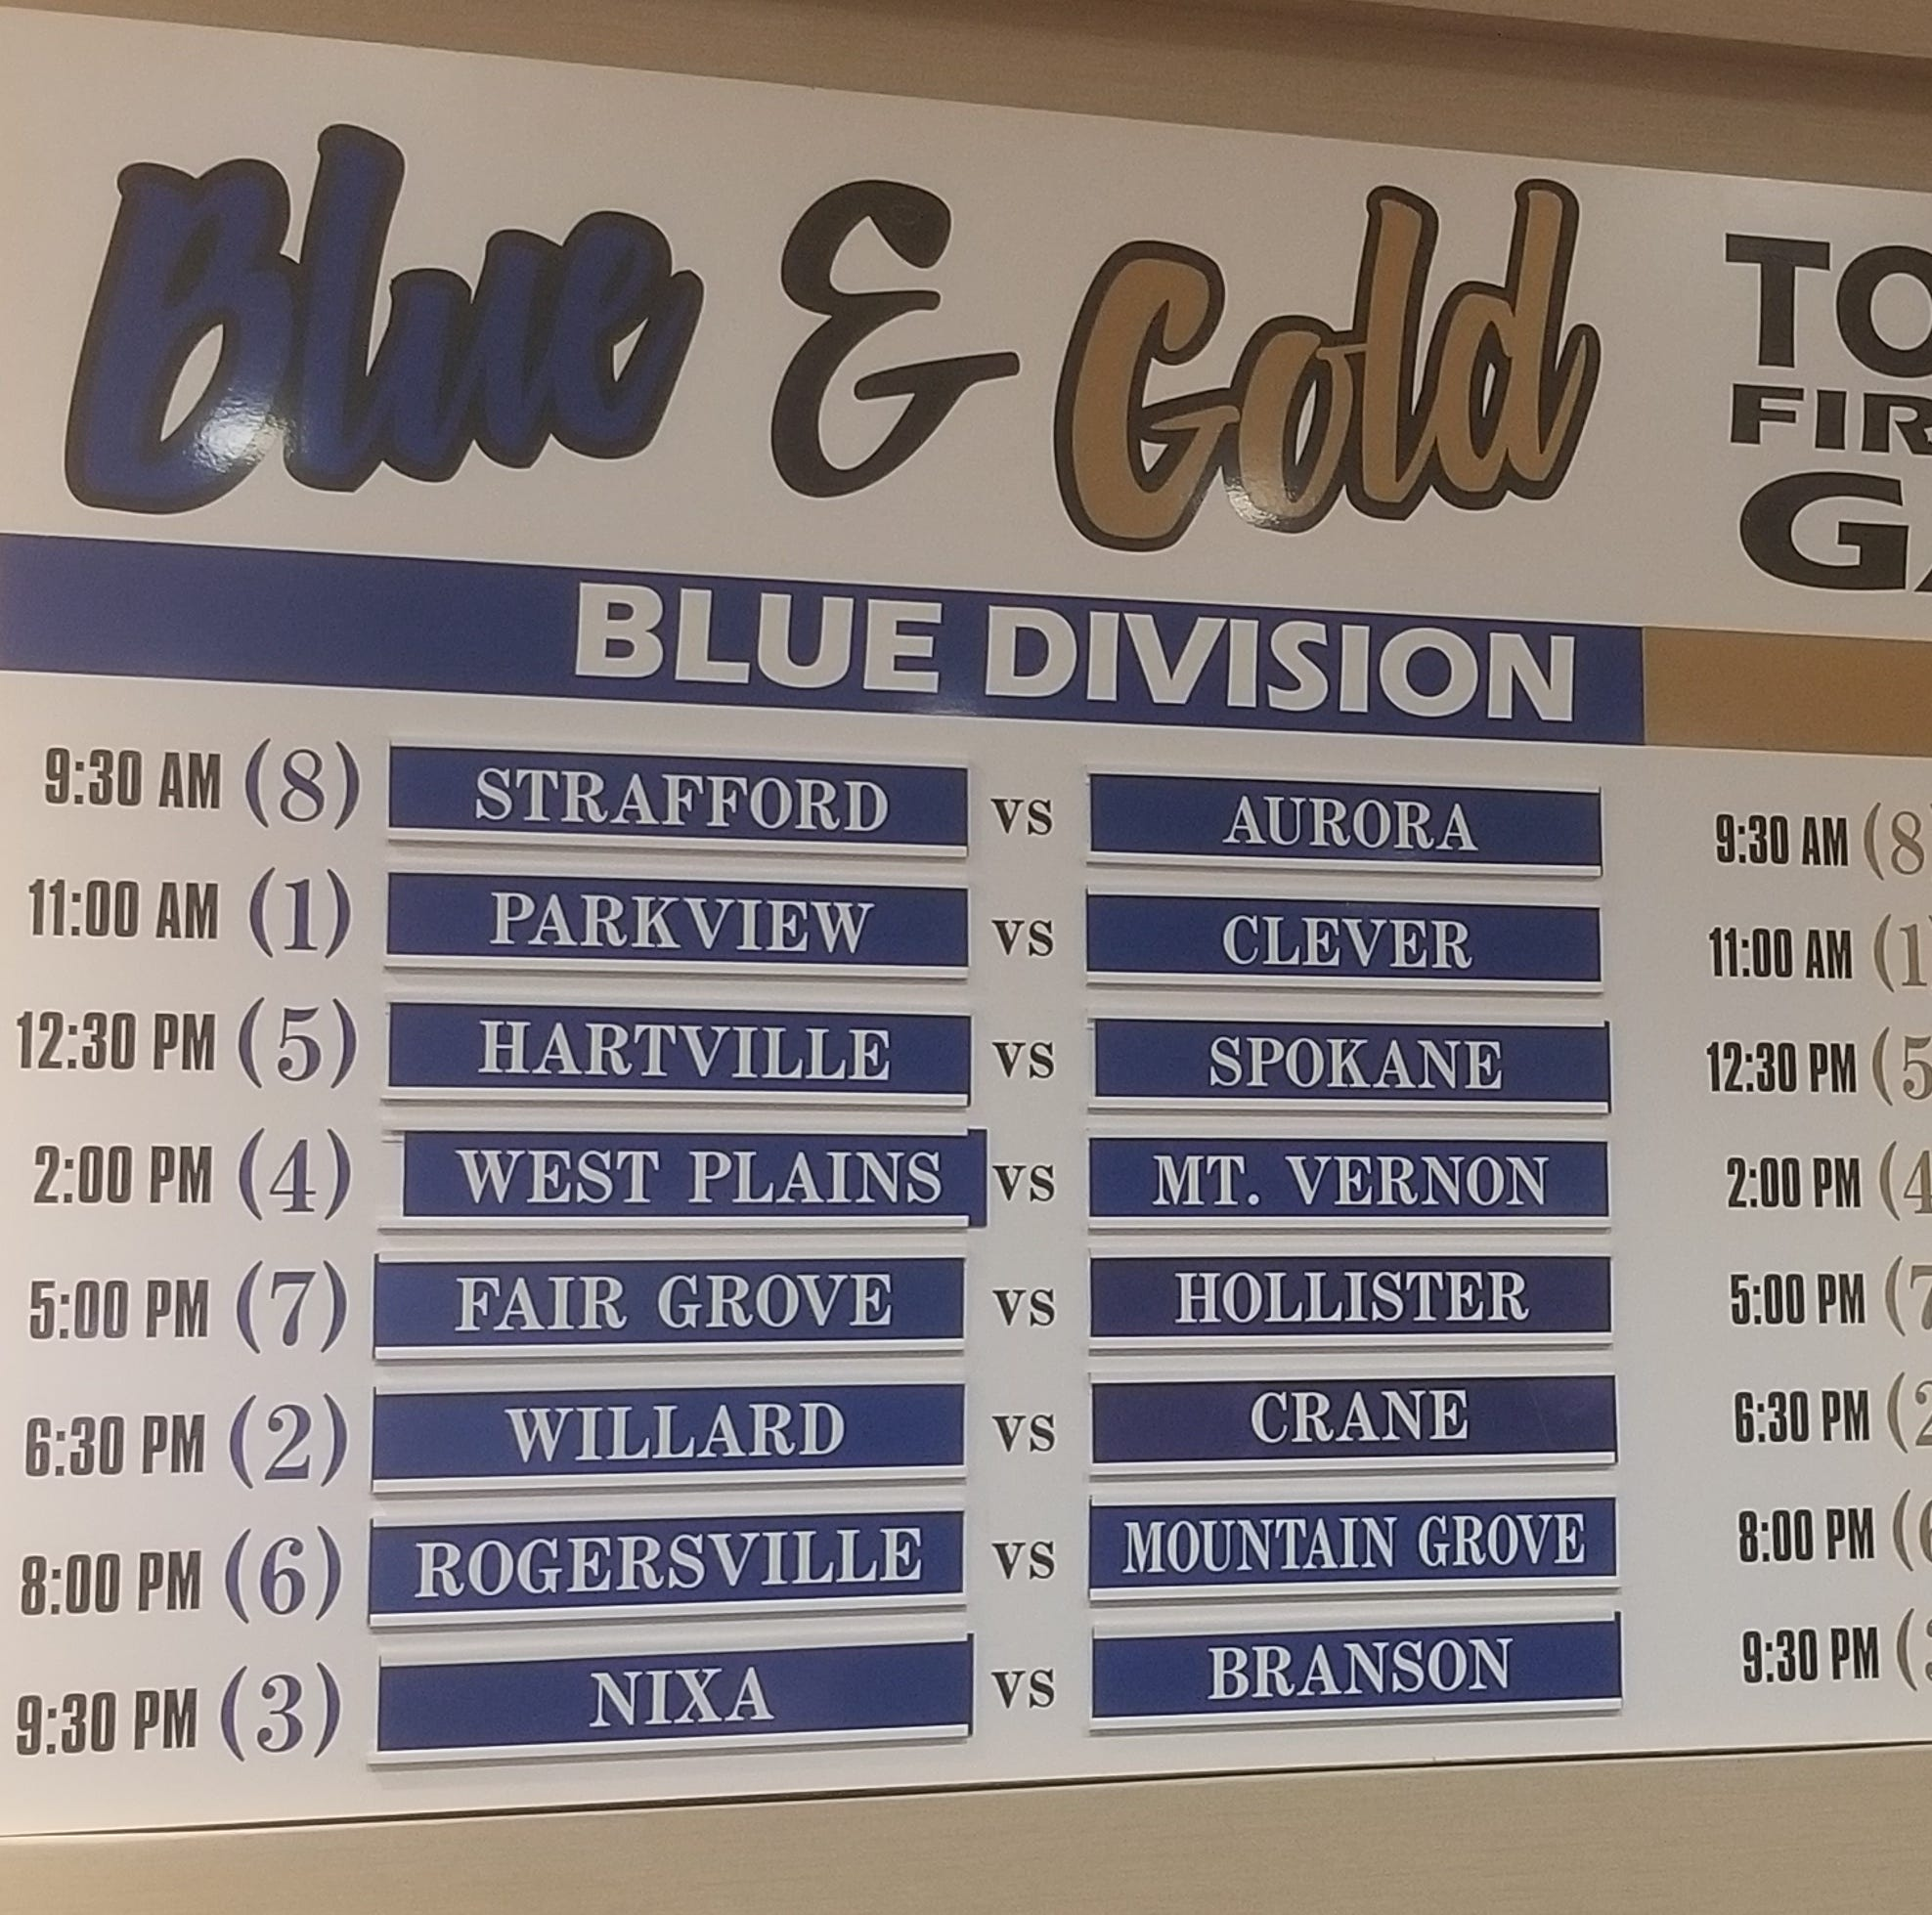 2018 Blue and Gold Basketball Tournament bracket released